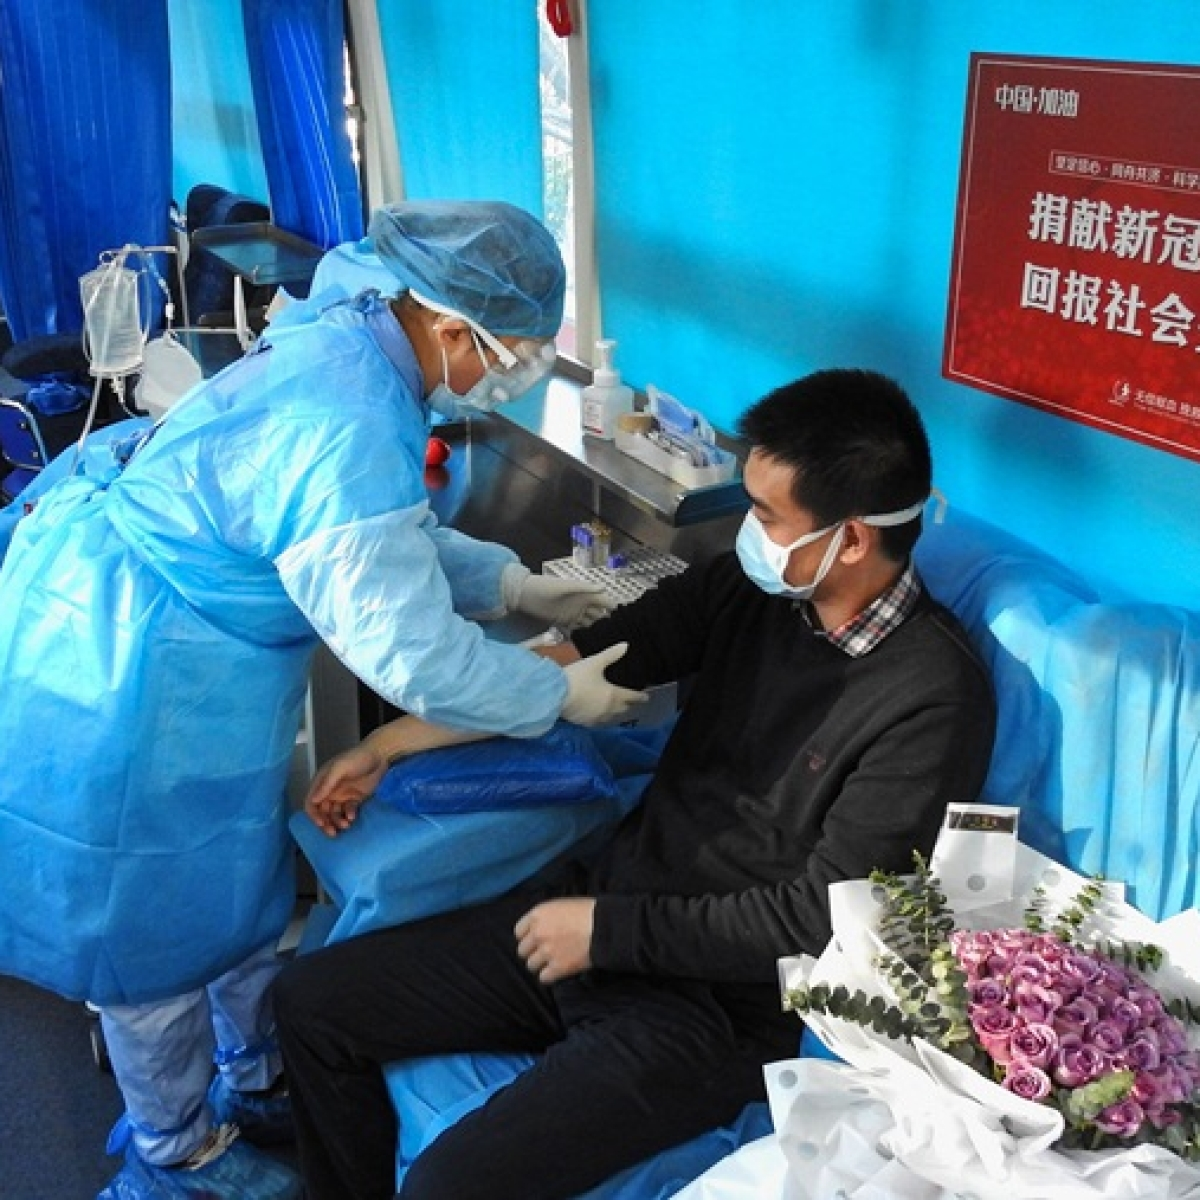 China's coronavirus death toll rises to 1,886; WHO warns against 'blanket measures'